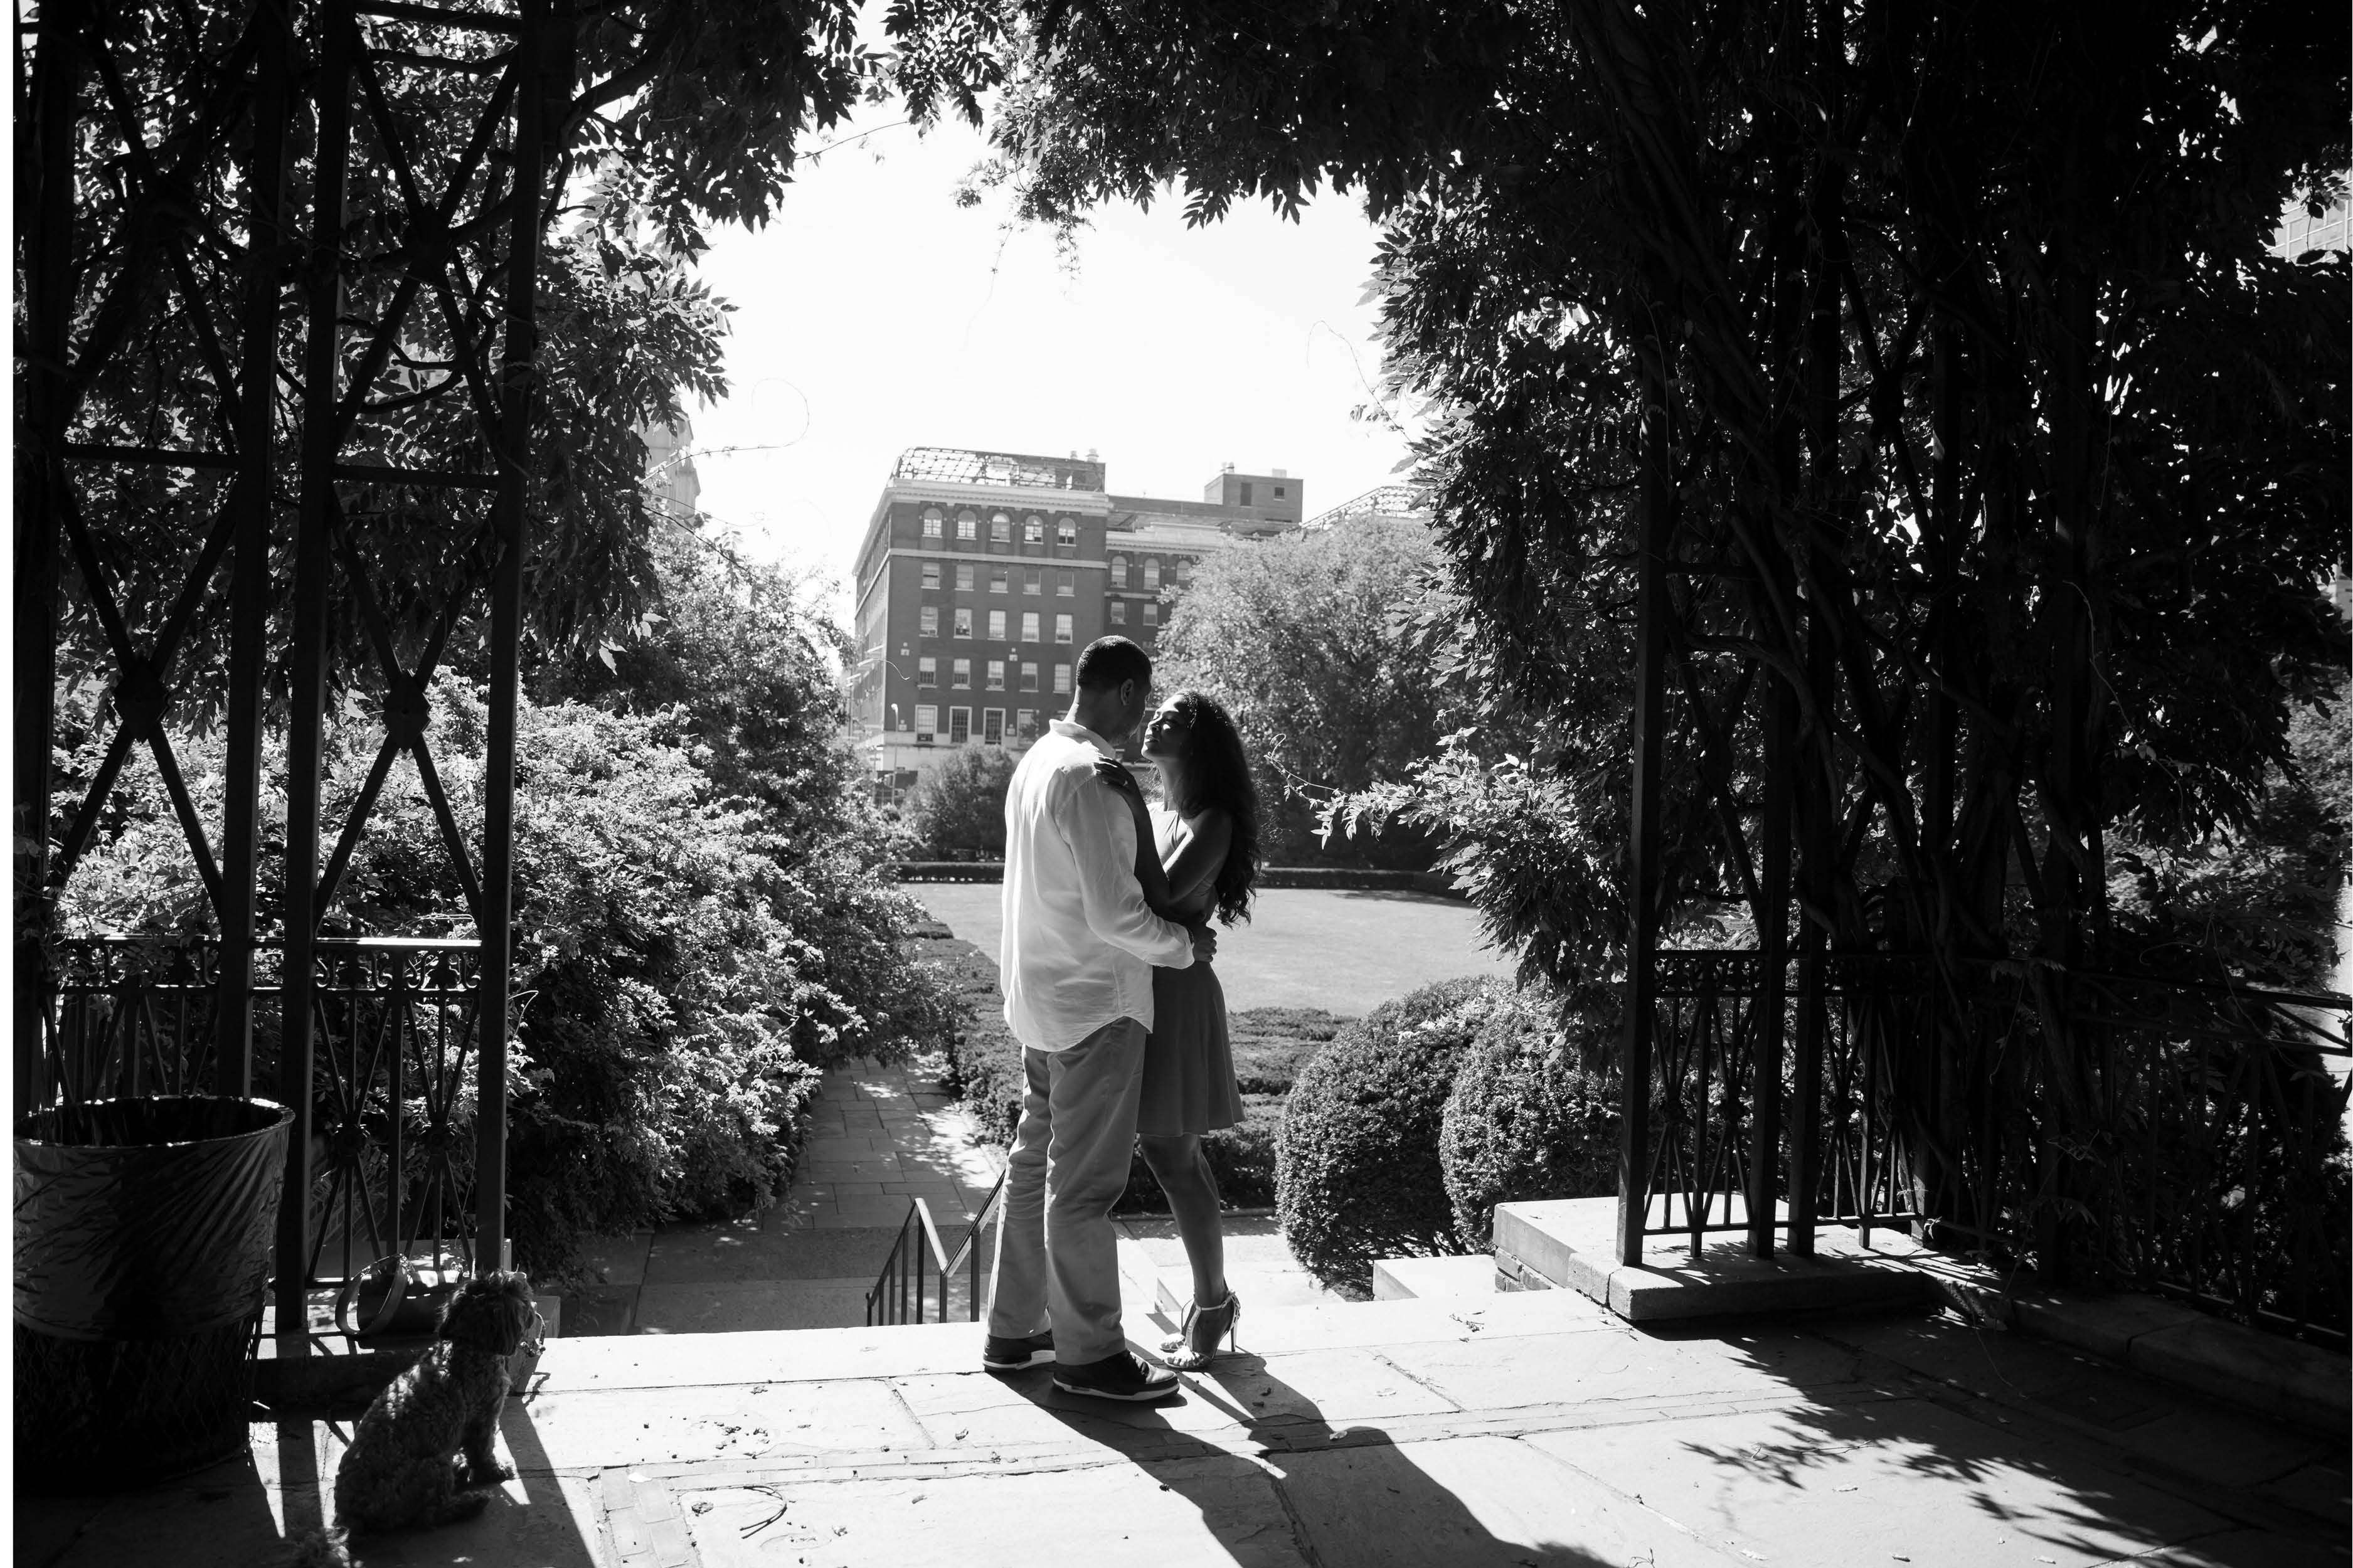 Emma_cleary_photography conservatory gardens13